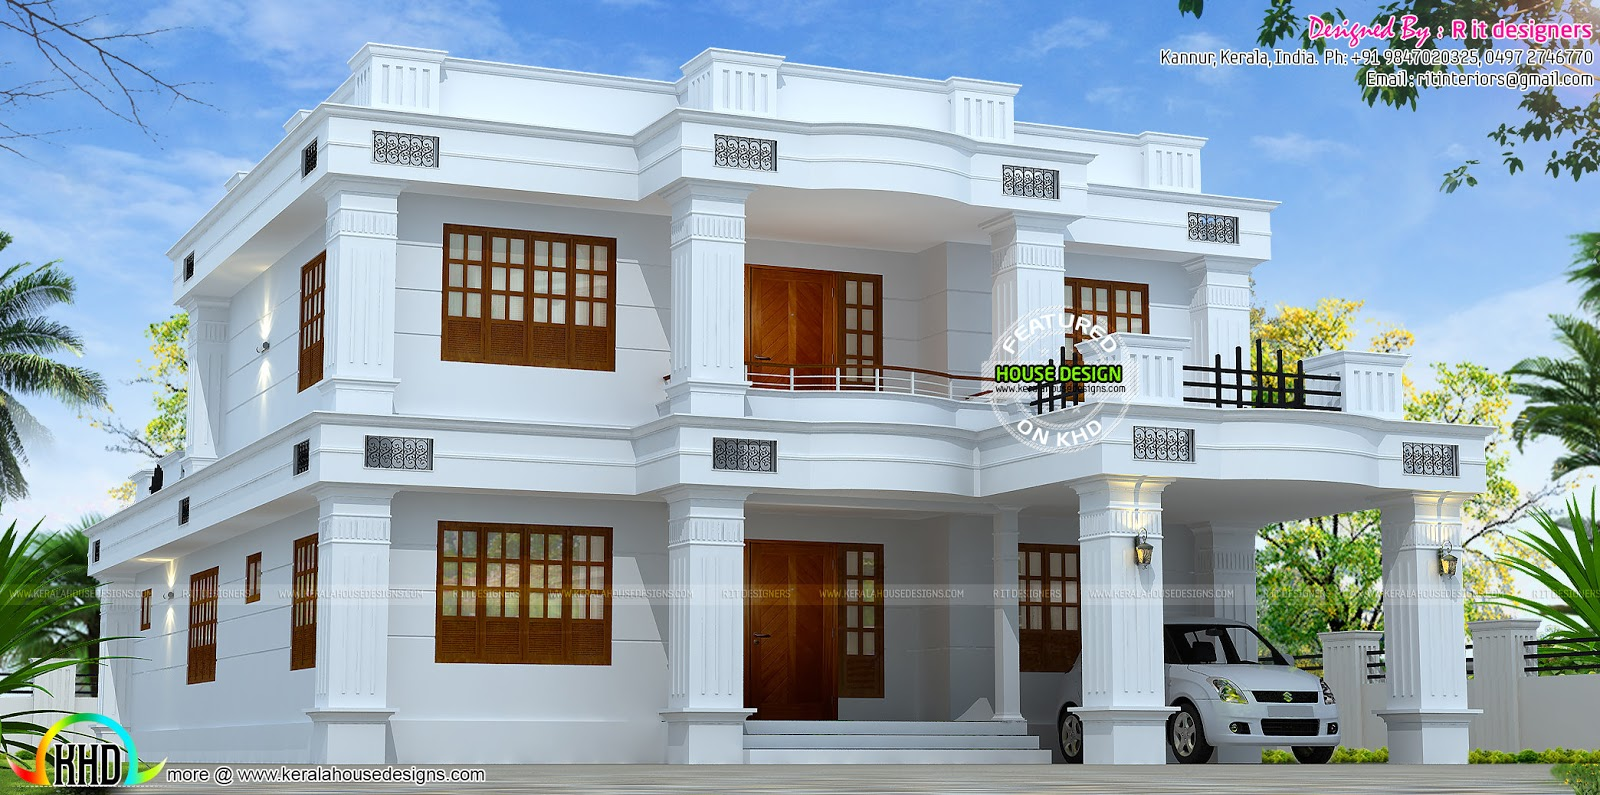 February 2016 kerala home design and floor plans for House plans and designs